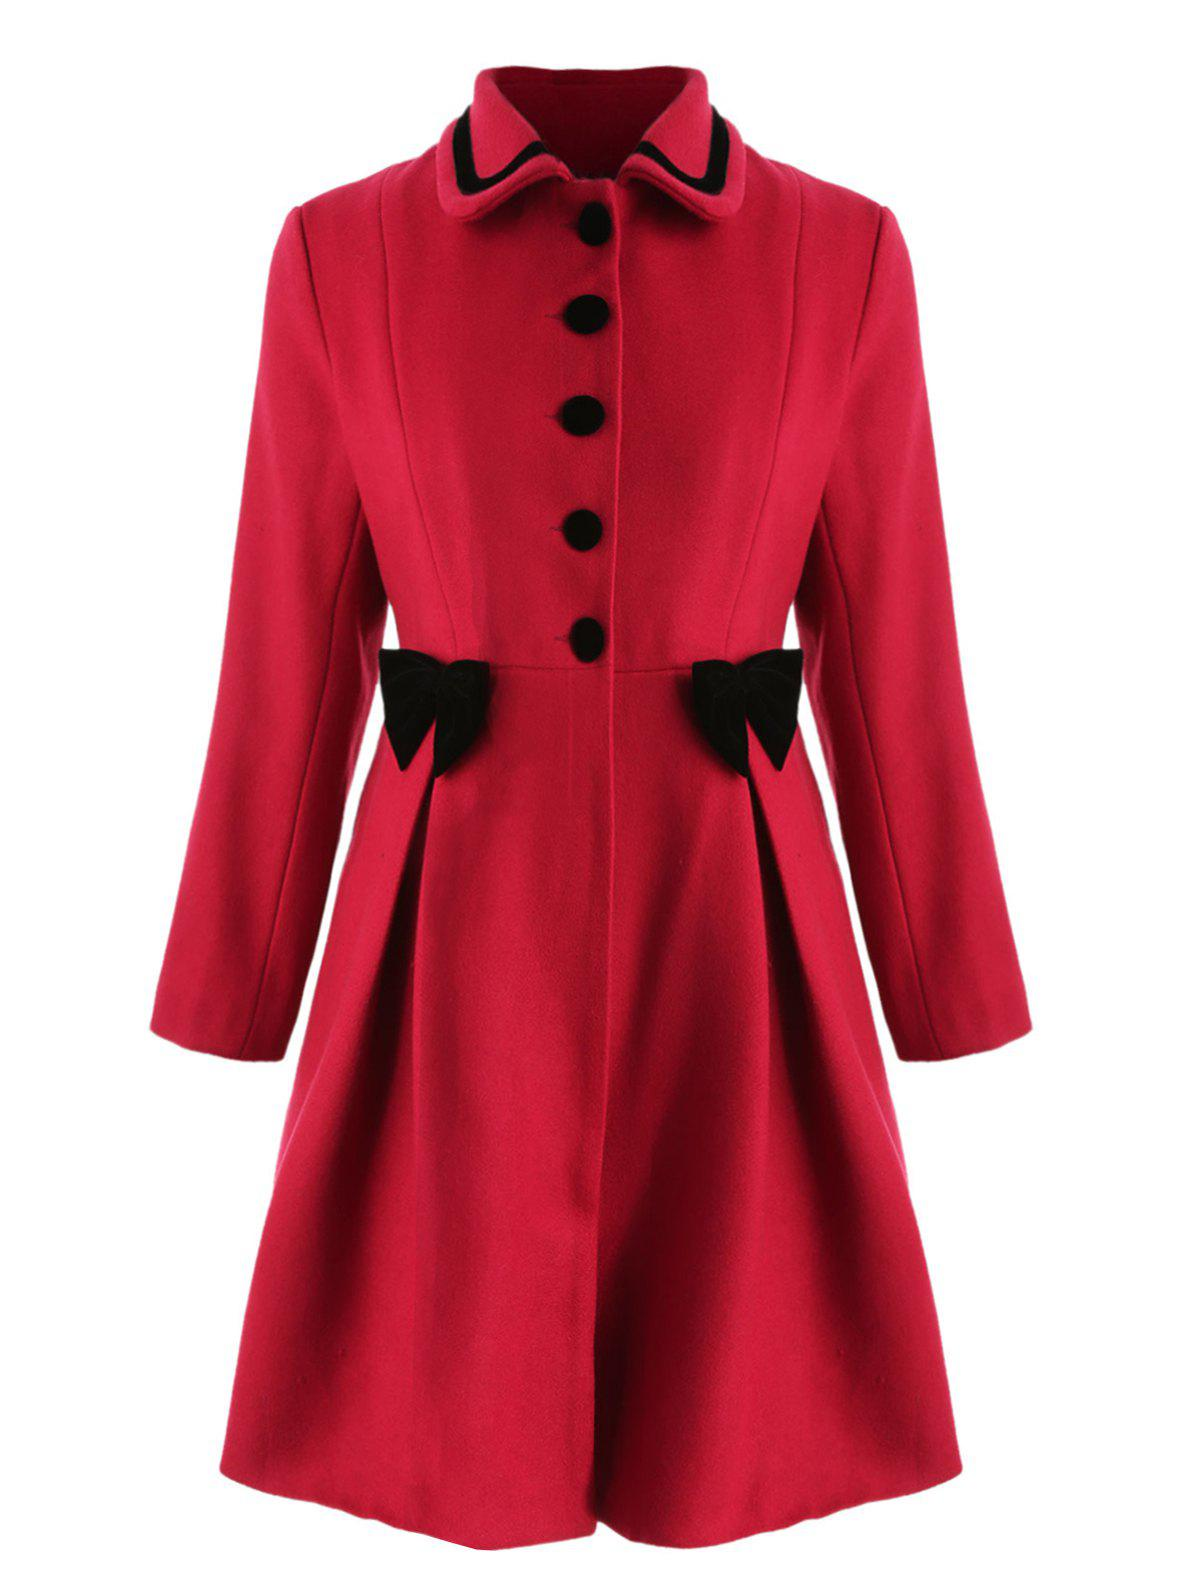 Plus Size Bowknot Embellished Longline Coat - RED L